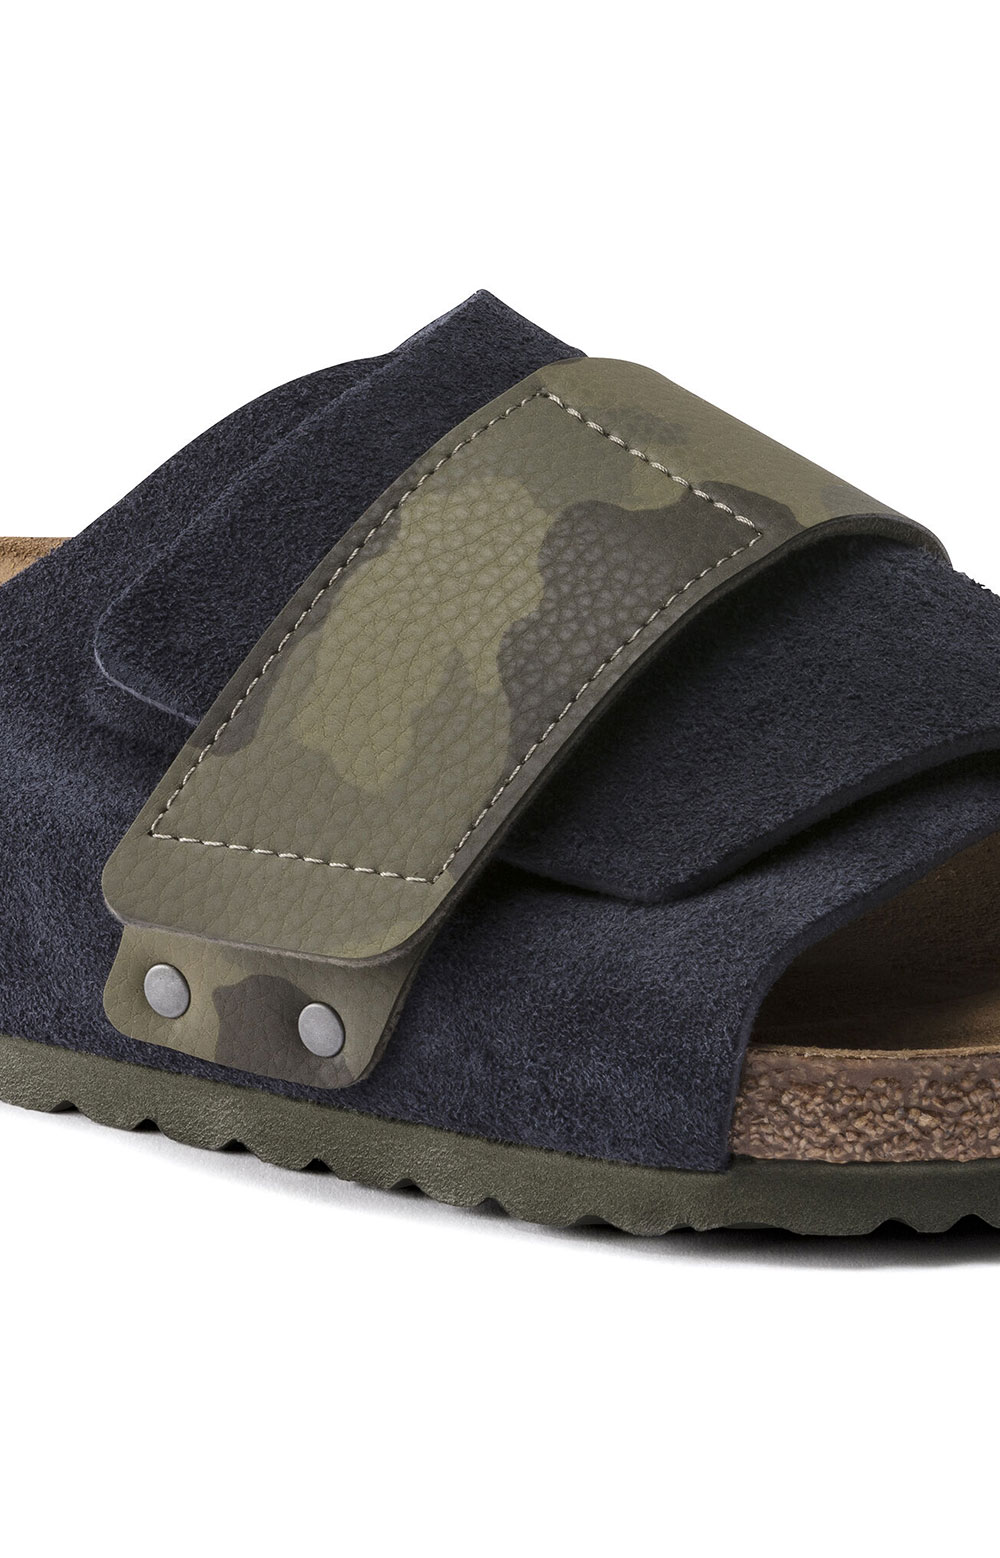 (1019737) Kyoto Sandals - Midnight Camo 2